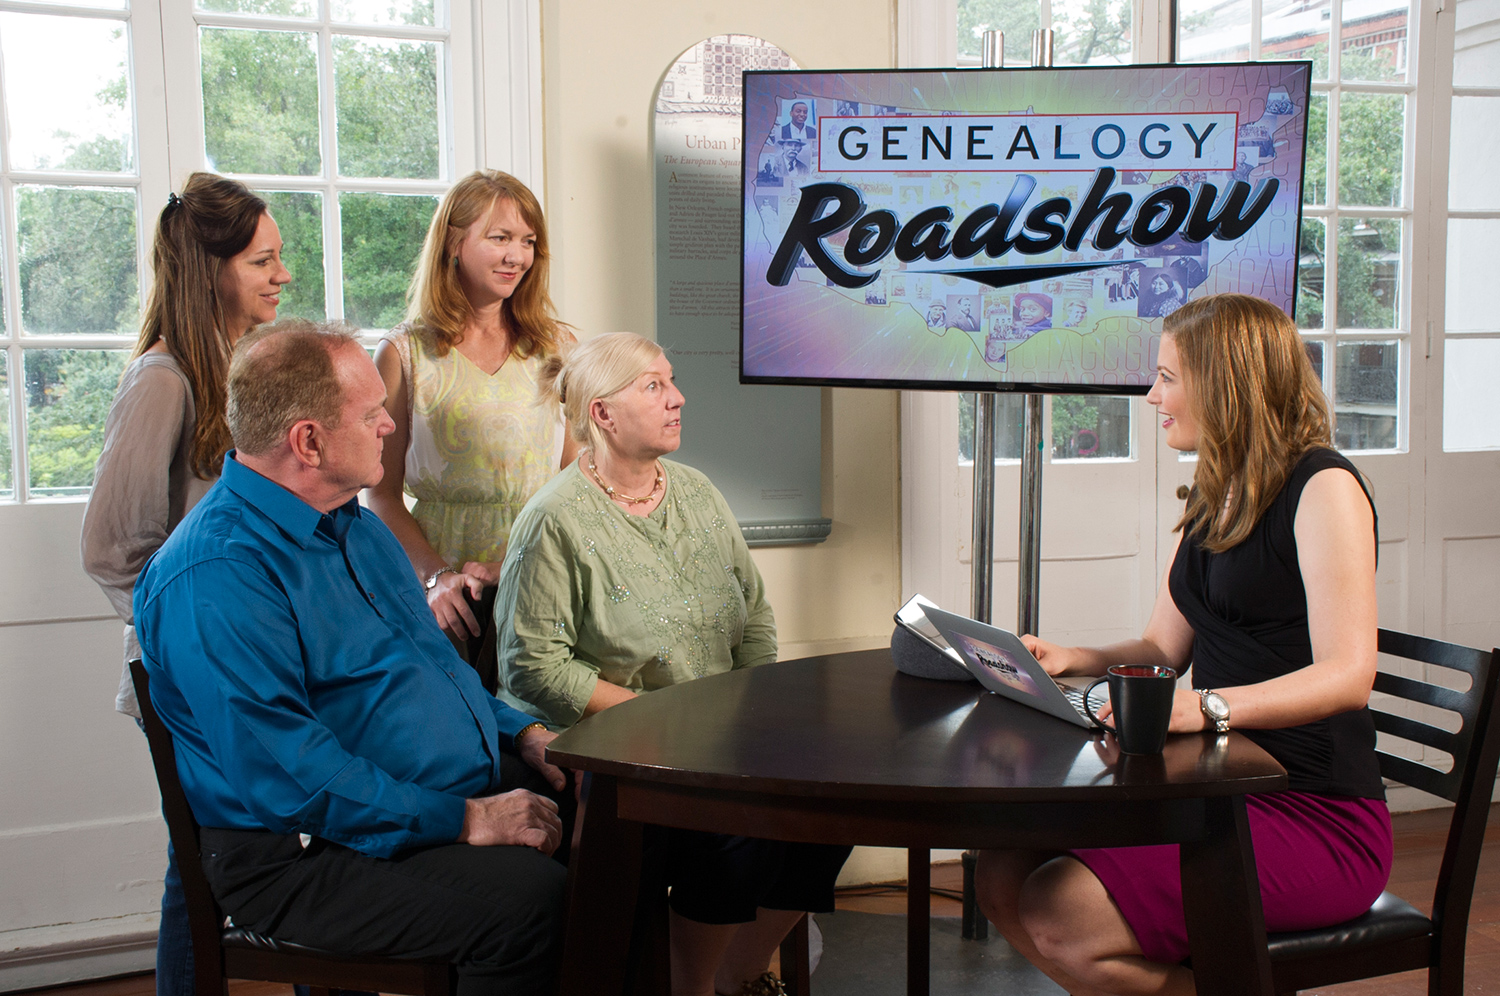 A scene from Genealogy Roadshow with Mary Tedesco.